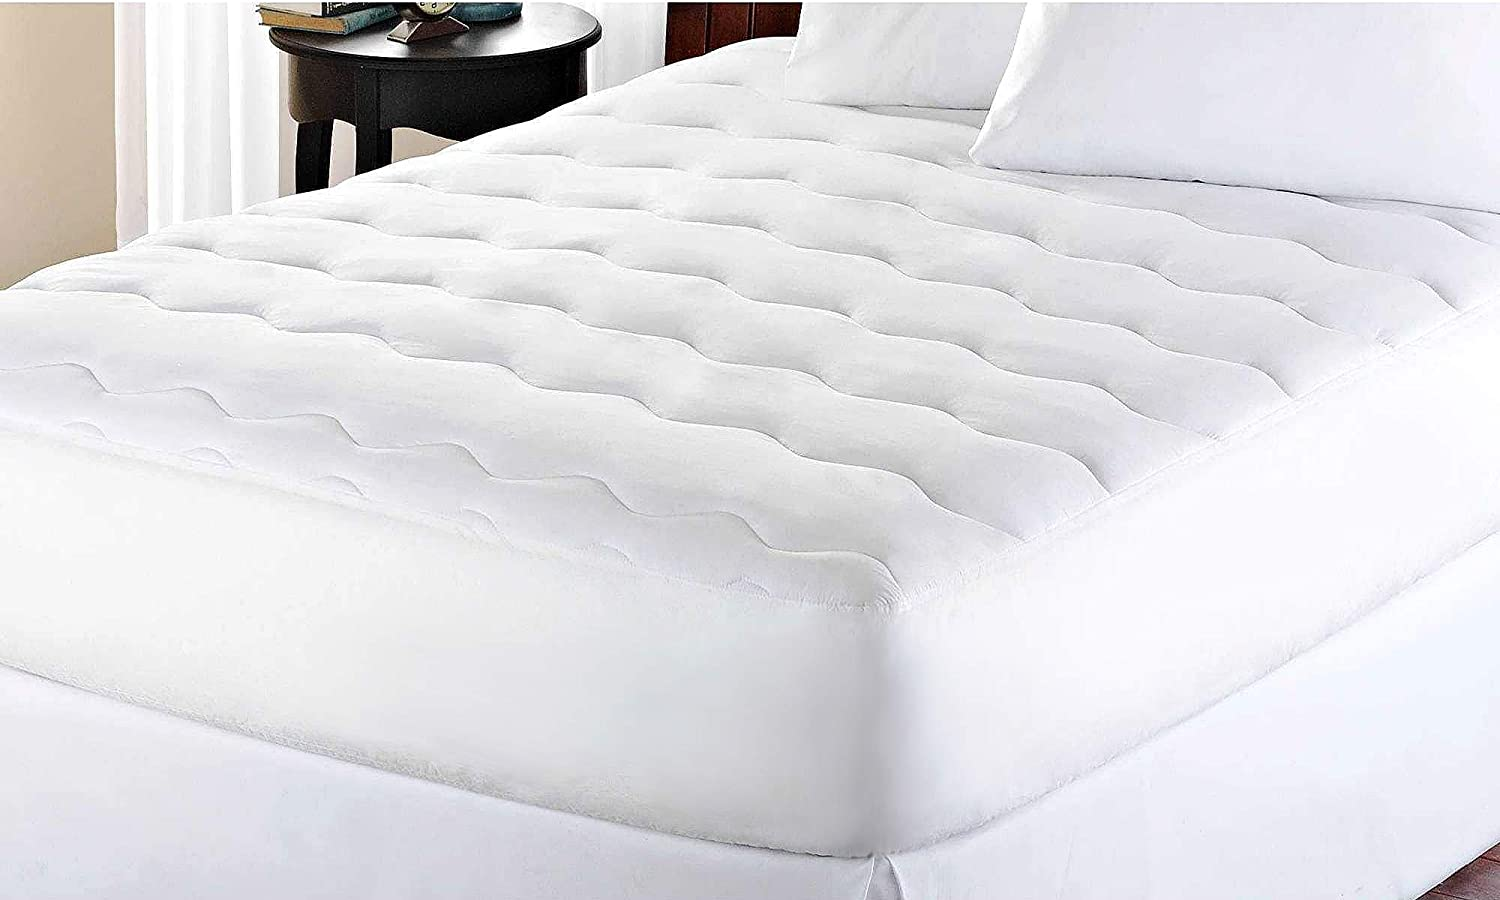 Blue Ridge Home Fashions Kathy Ireland-Essentials Microfiber Water Proof Full in White Color Mattress Pad